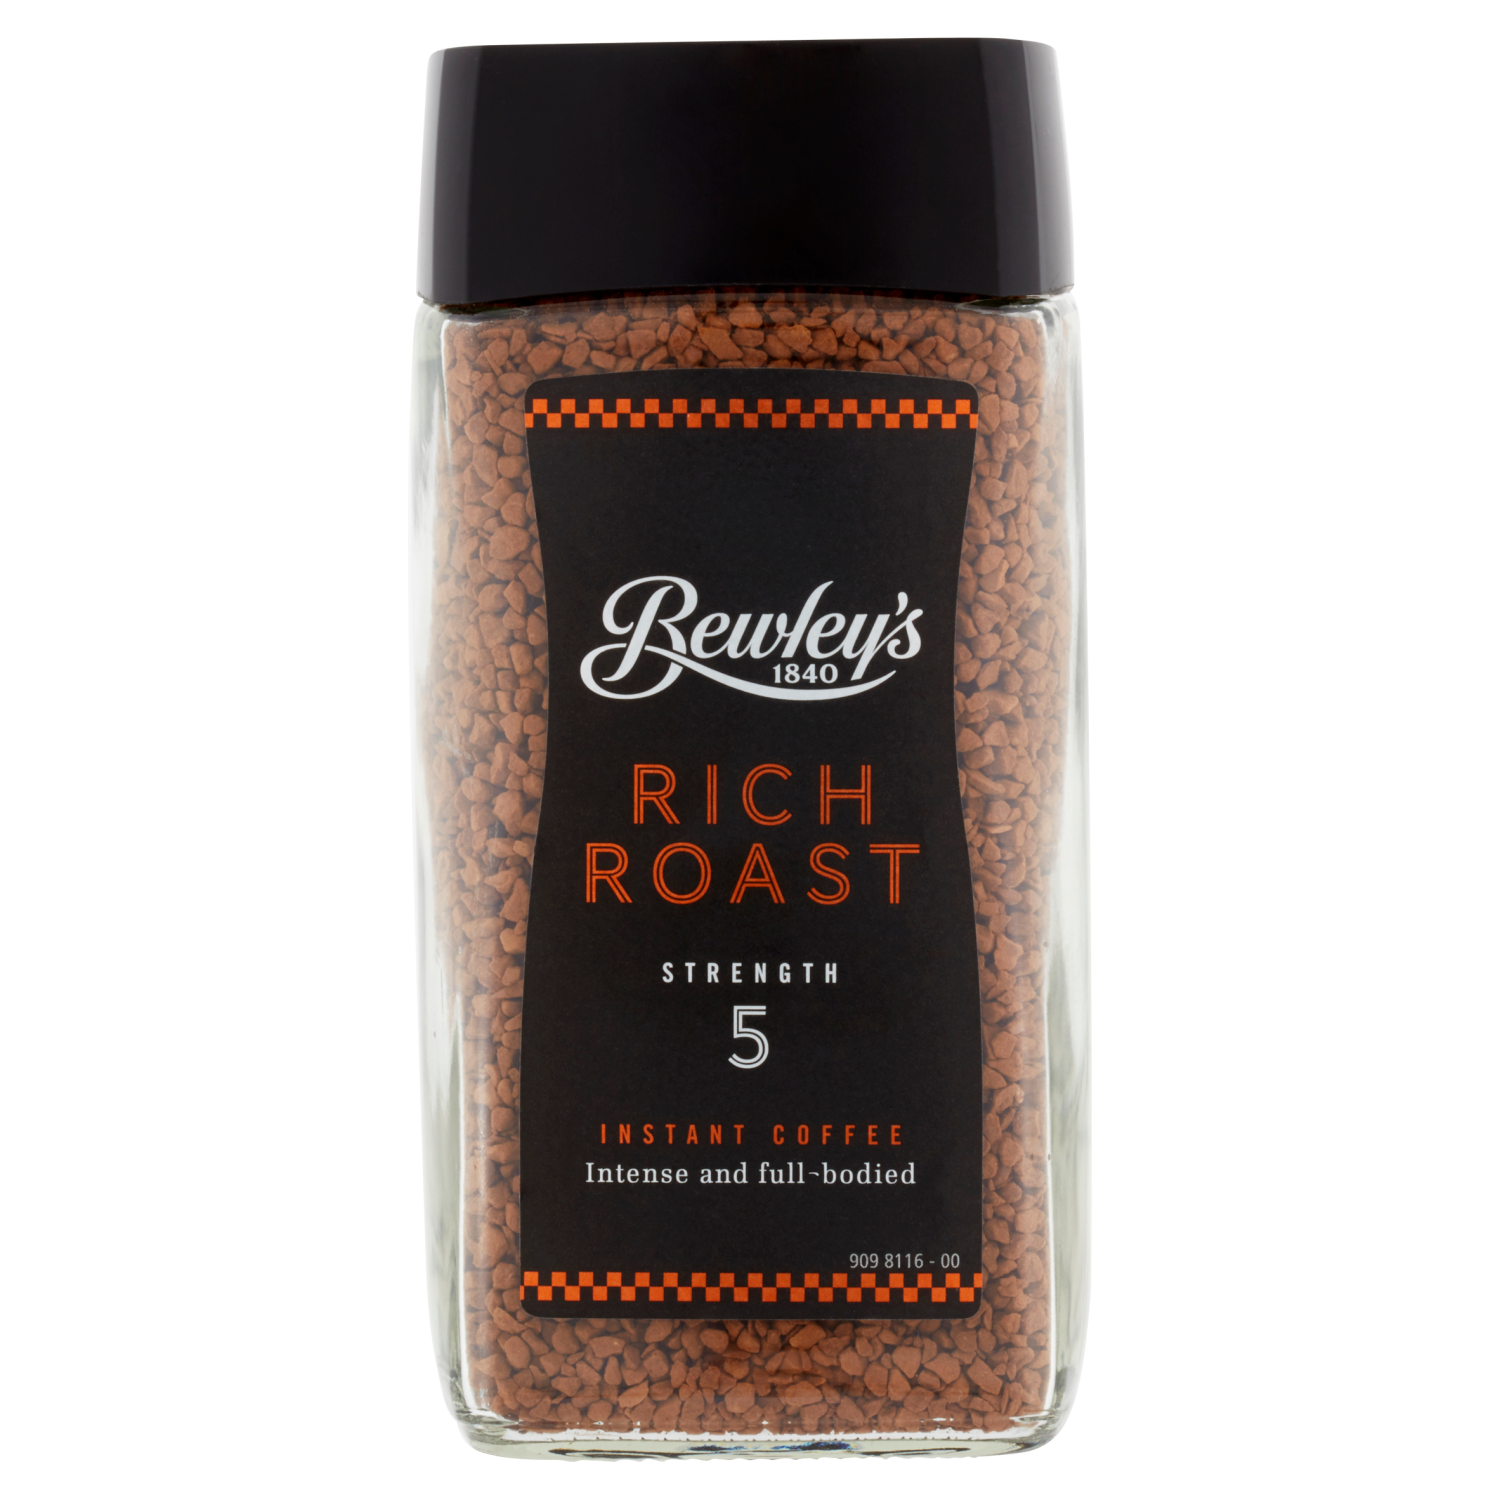 Bewley's Rich Roast Instant Coffee